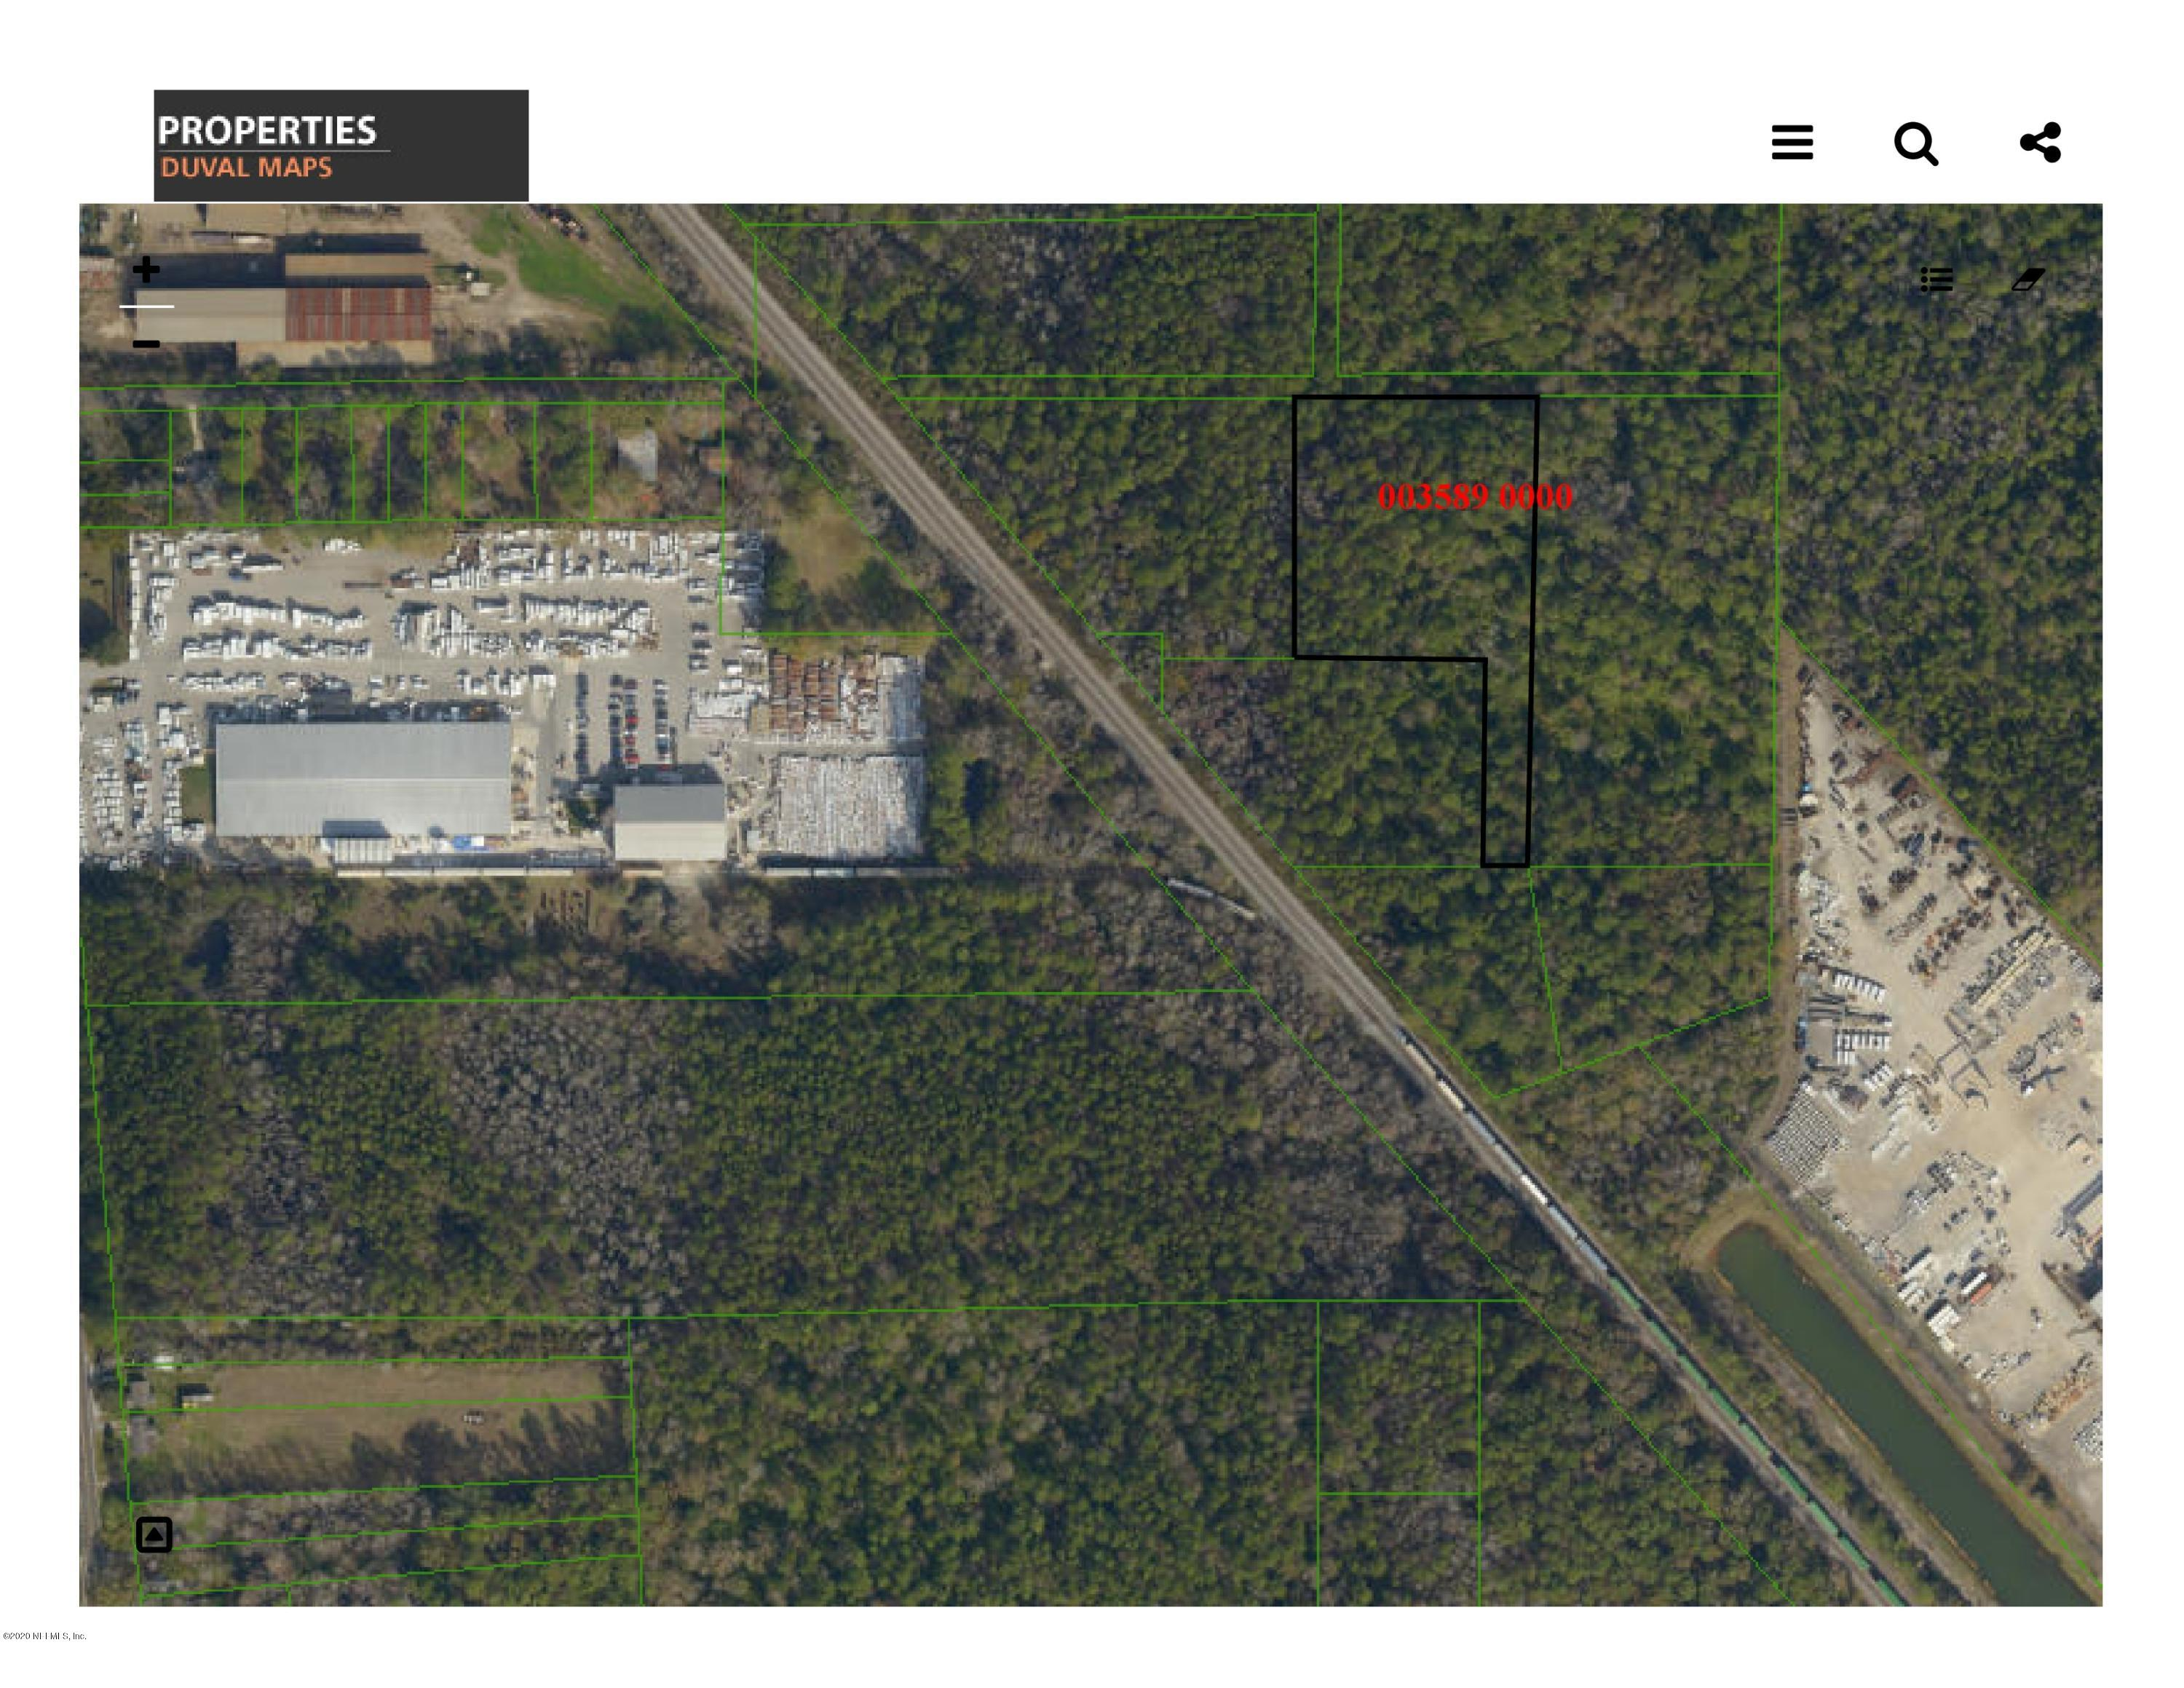 0 UNION HEIGHTS, JACKSONVILLE, FLORIDA 32219, ,Vacant land,For sale,UNION HEIGHTS,1032891